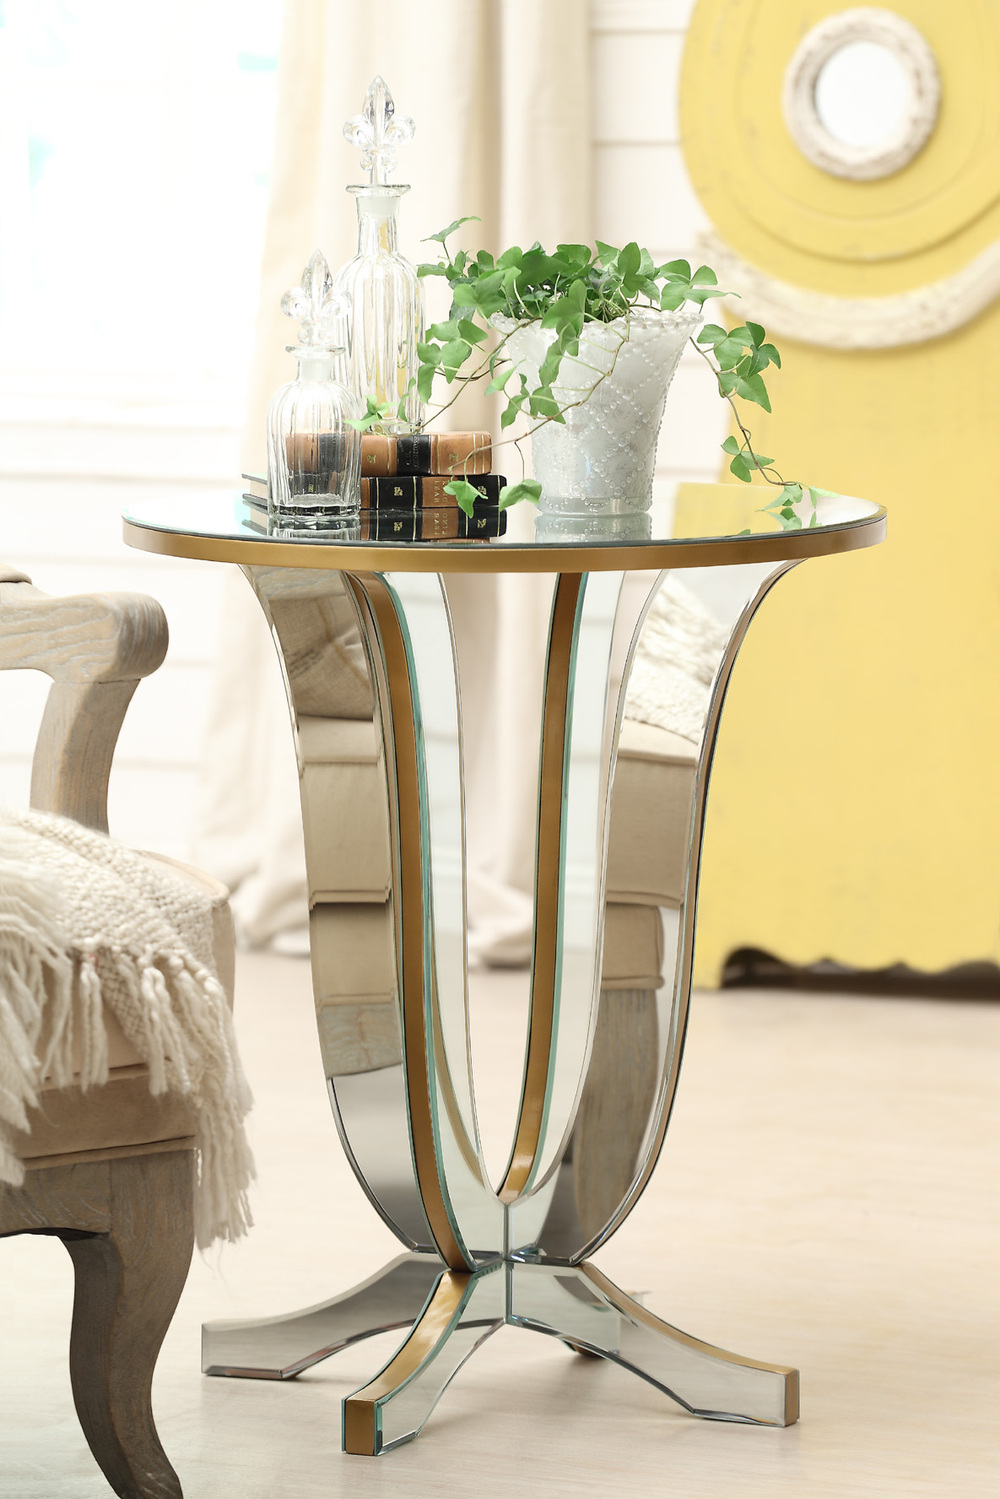 round tables for antique accent table target decorative white living furniture modern kijiji gold glass outdoor room full size console clear acrylic sofa world market end small